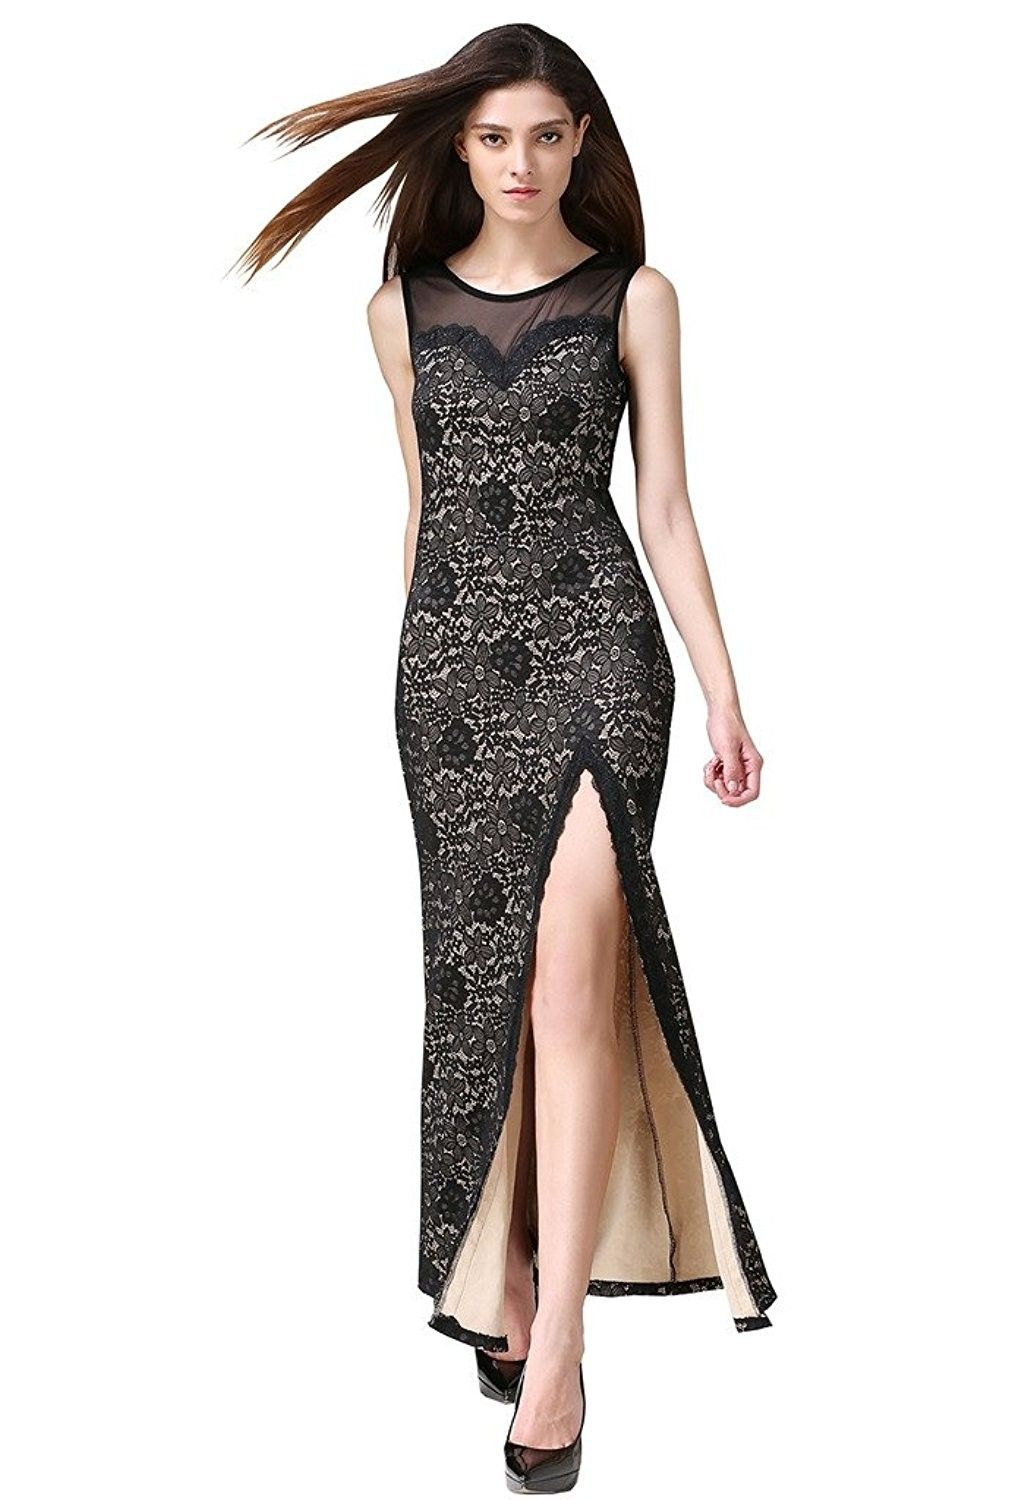 d5527c30e41f Women's Clothing, Dresses, Formal, Women's Sleeveless Floral Lace Split  Side Long Evening Gown Dress - Nude - C812M02MN9D #women #clothing #fashion  ...